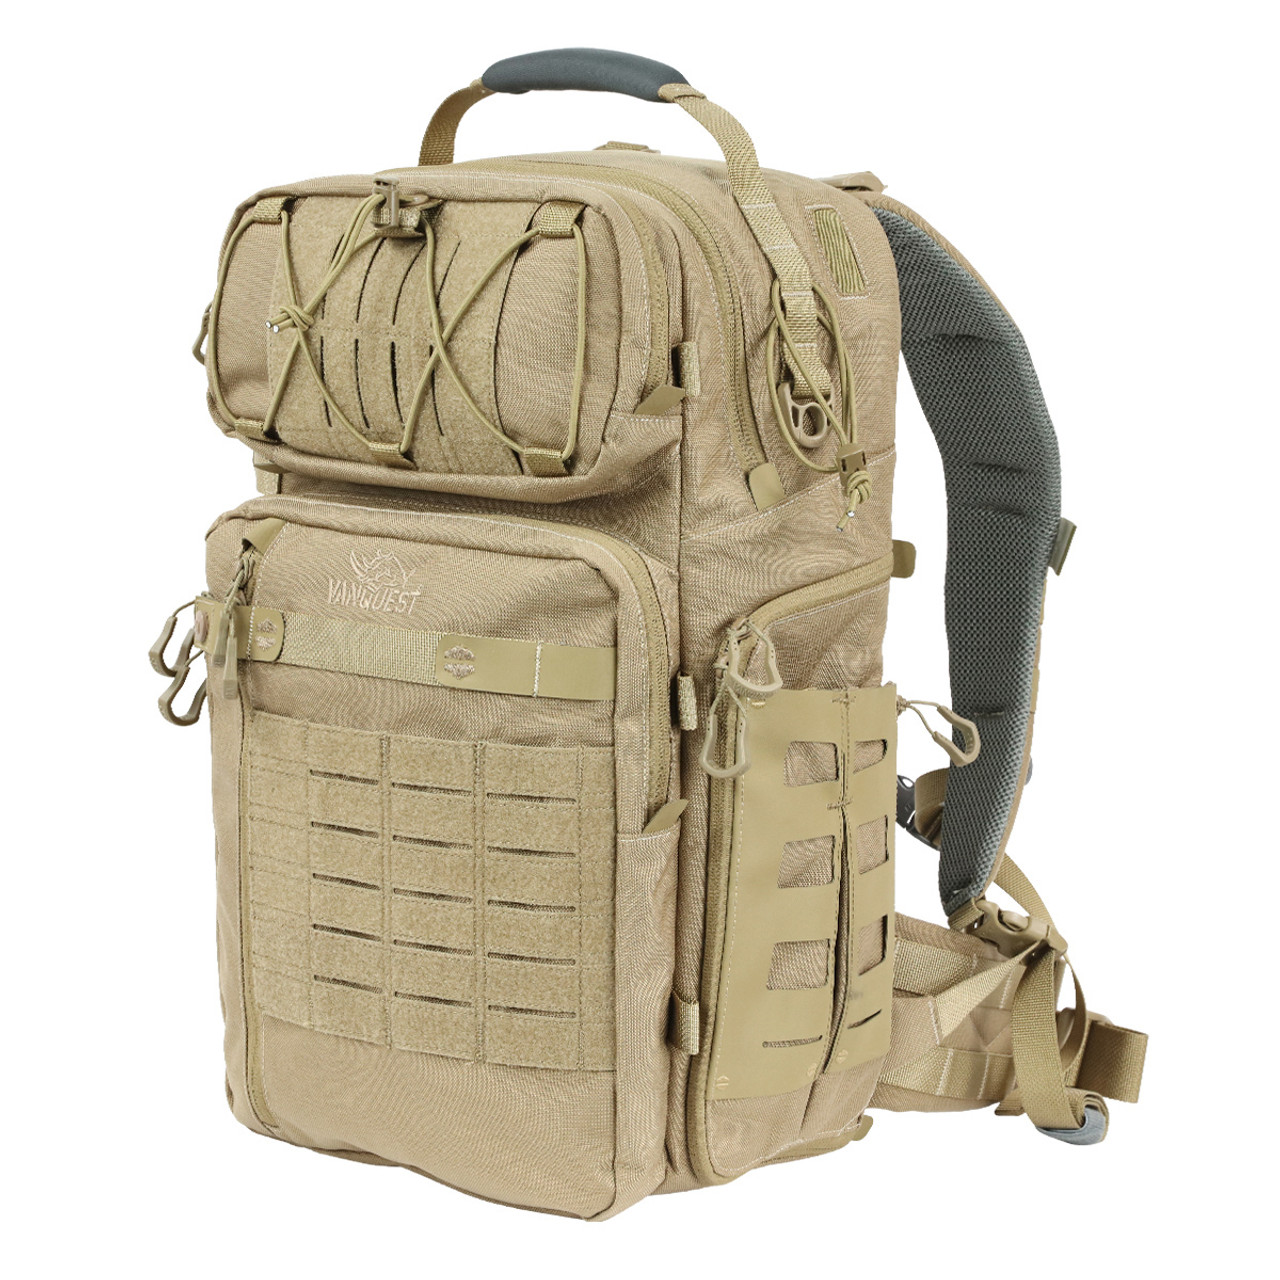 00117c9735ef TRIDENT-31 Backpack - VANQUEST  TOUGH-BUILT GEAR